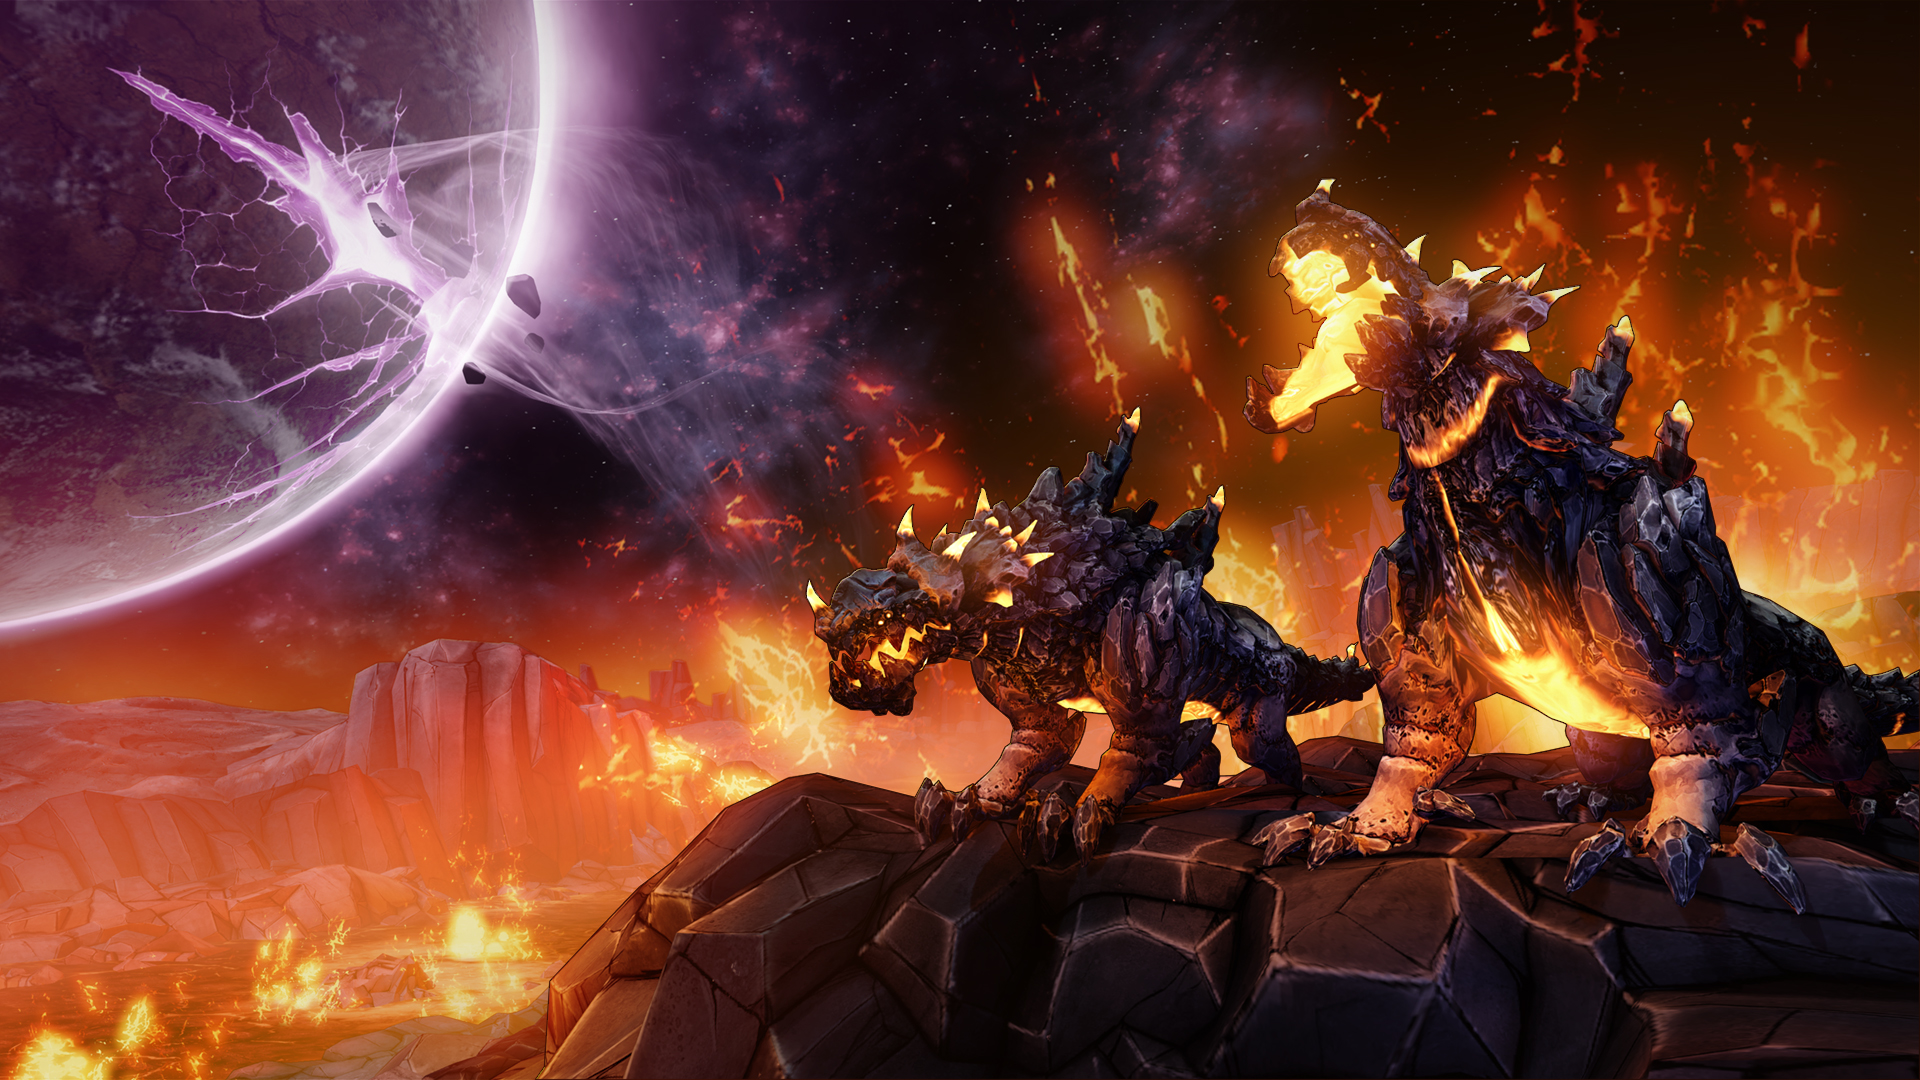 Borderlands: The Pre-Sequel System Requirements - Can I Run It